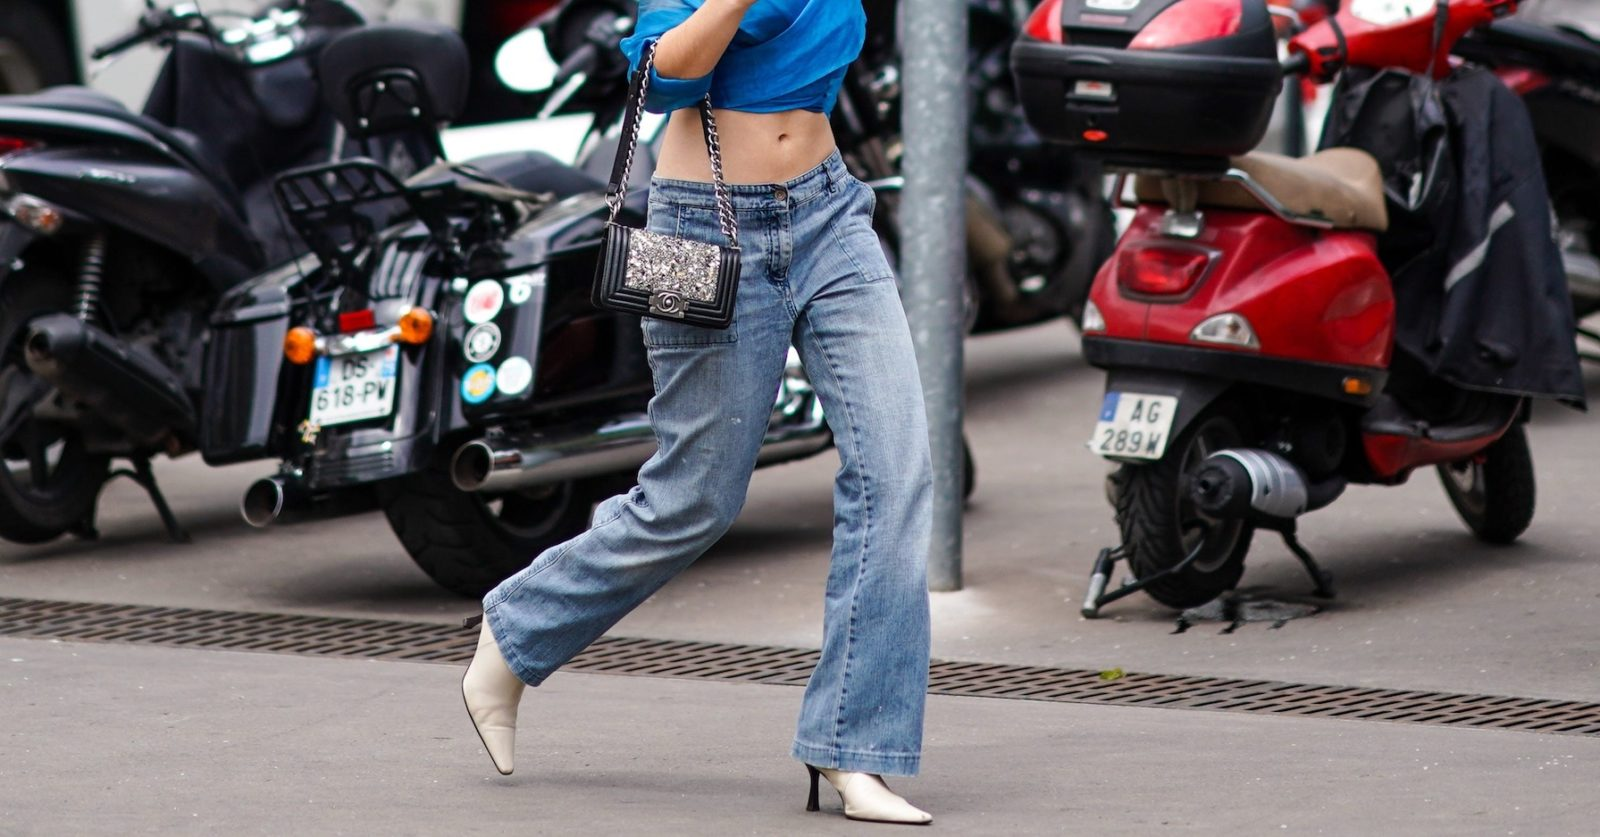 Here's how to choose the perfect jeans according to your body type